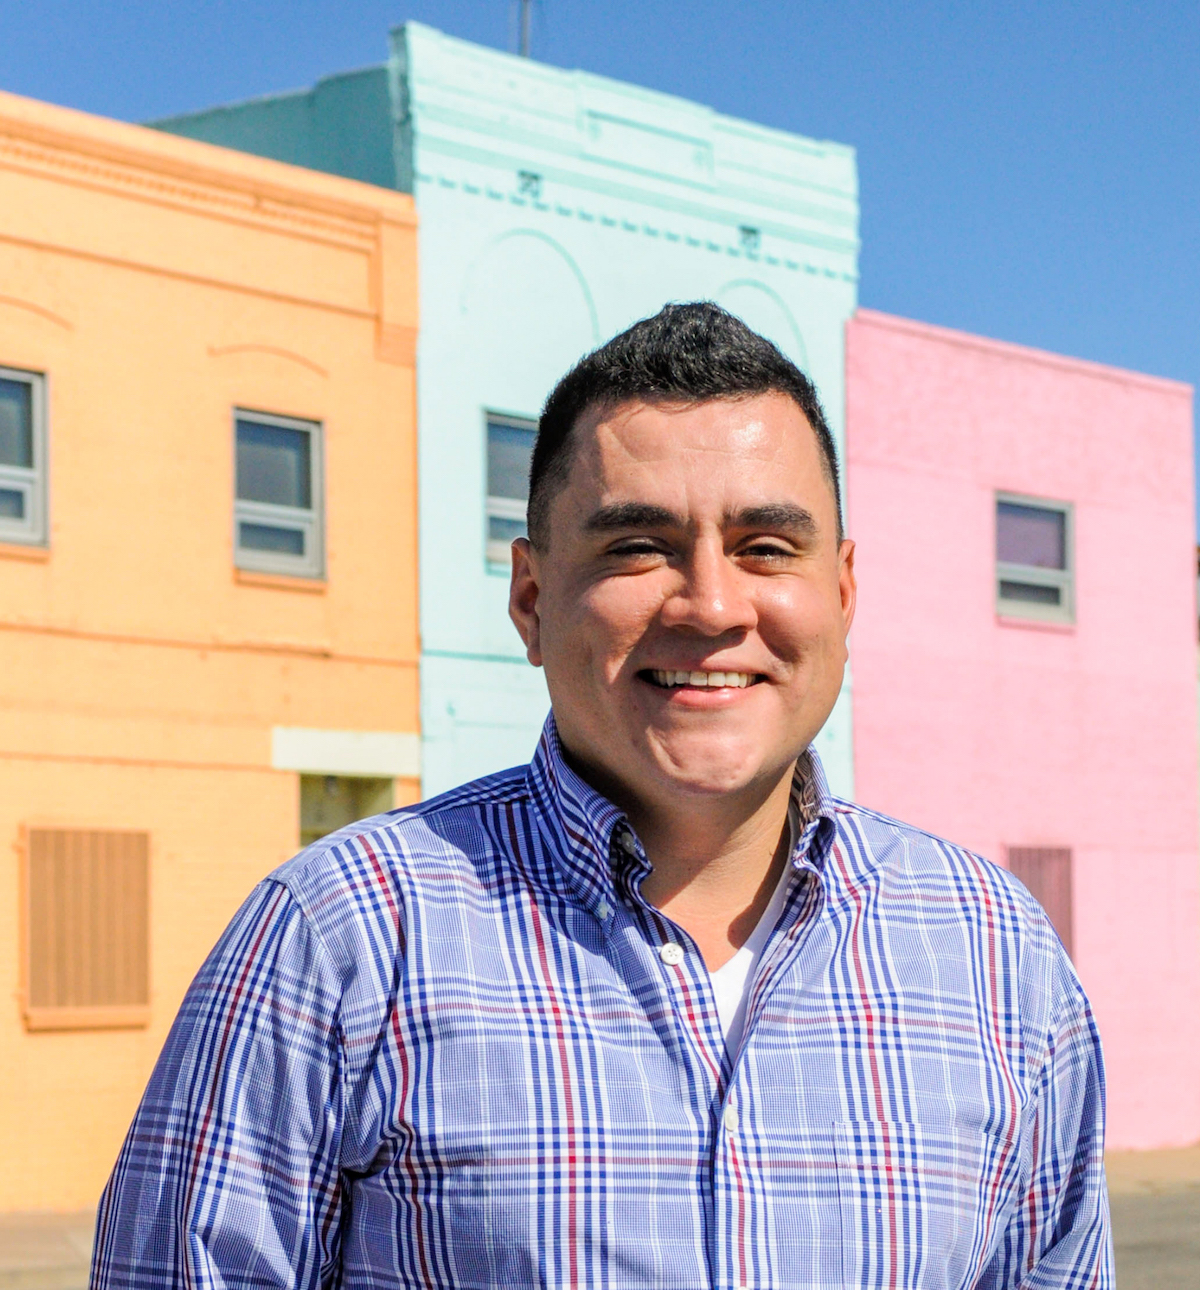 Man in plaid shirt and short dark hair, smiling and standing in front of pastel colored multi-story building